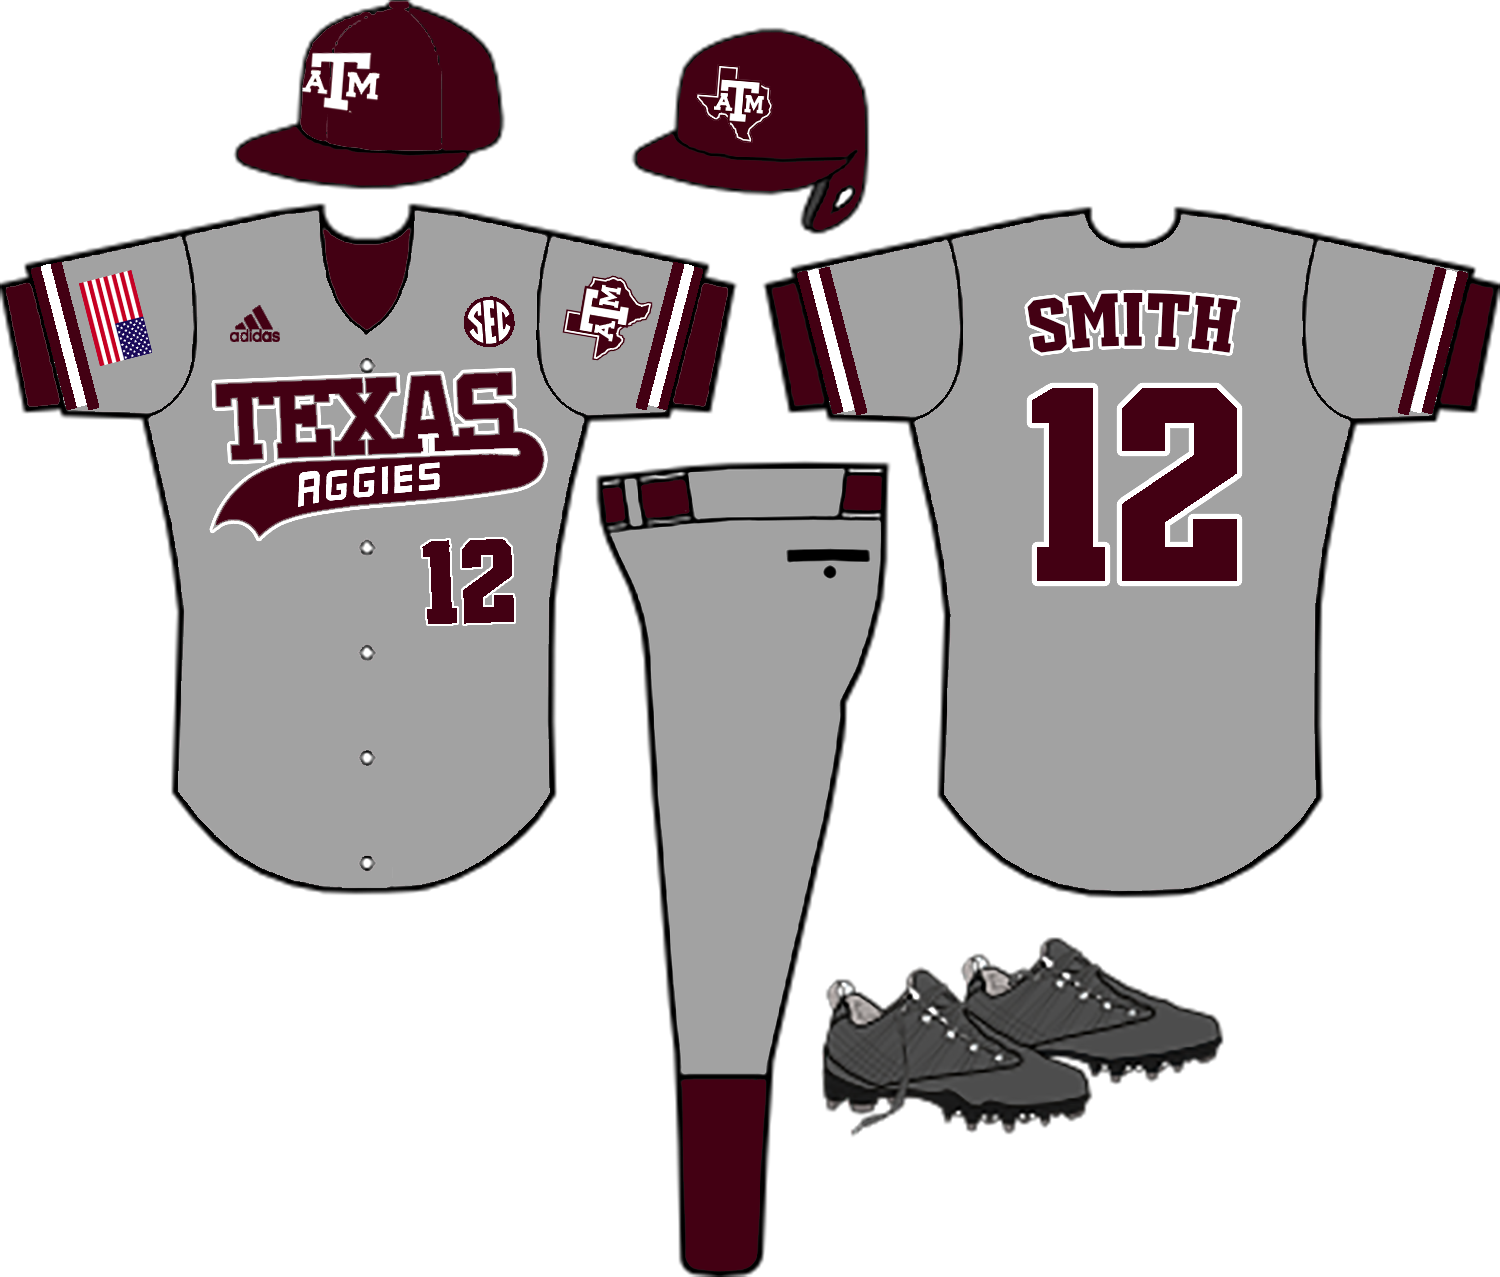 Baseball jersey clipart stripes transparent stock 2018 Uniform talk Page 3 | TexAgs transparent stock